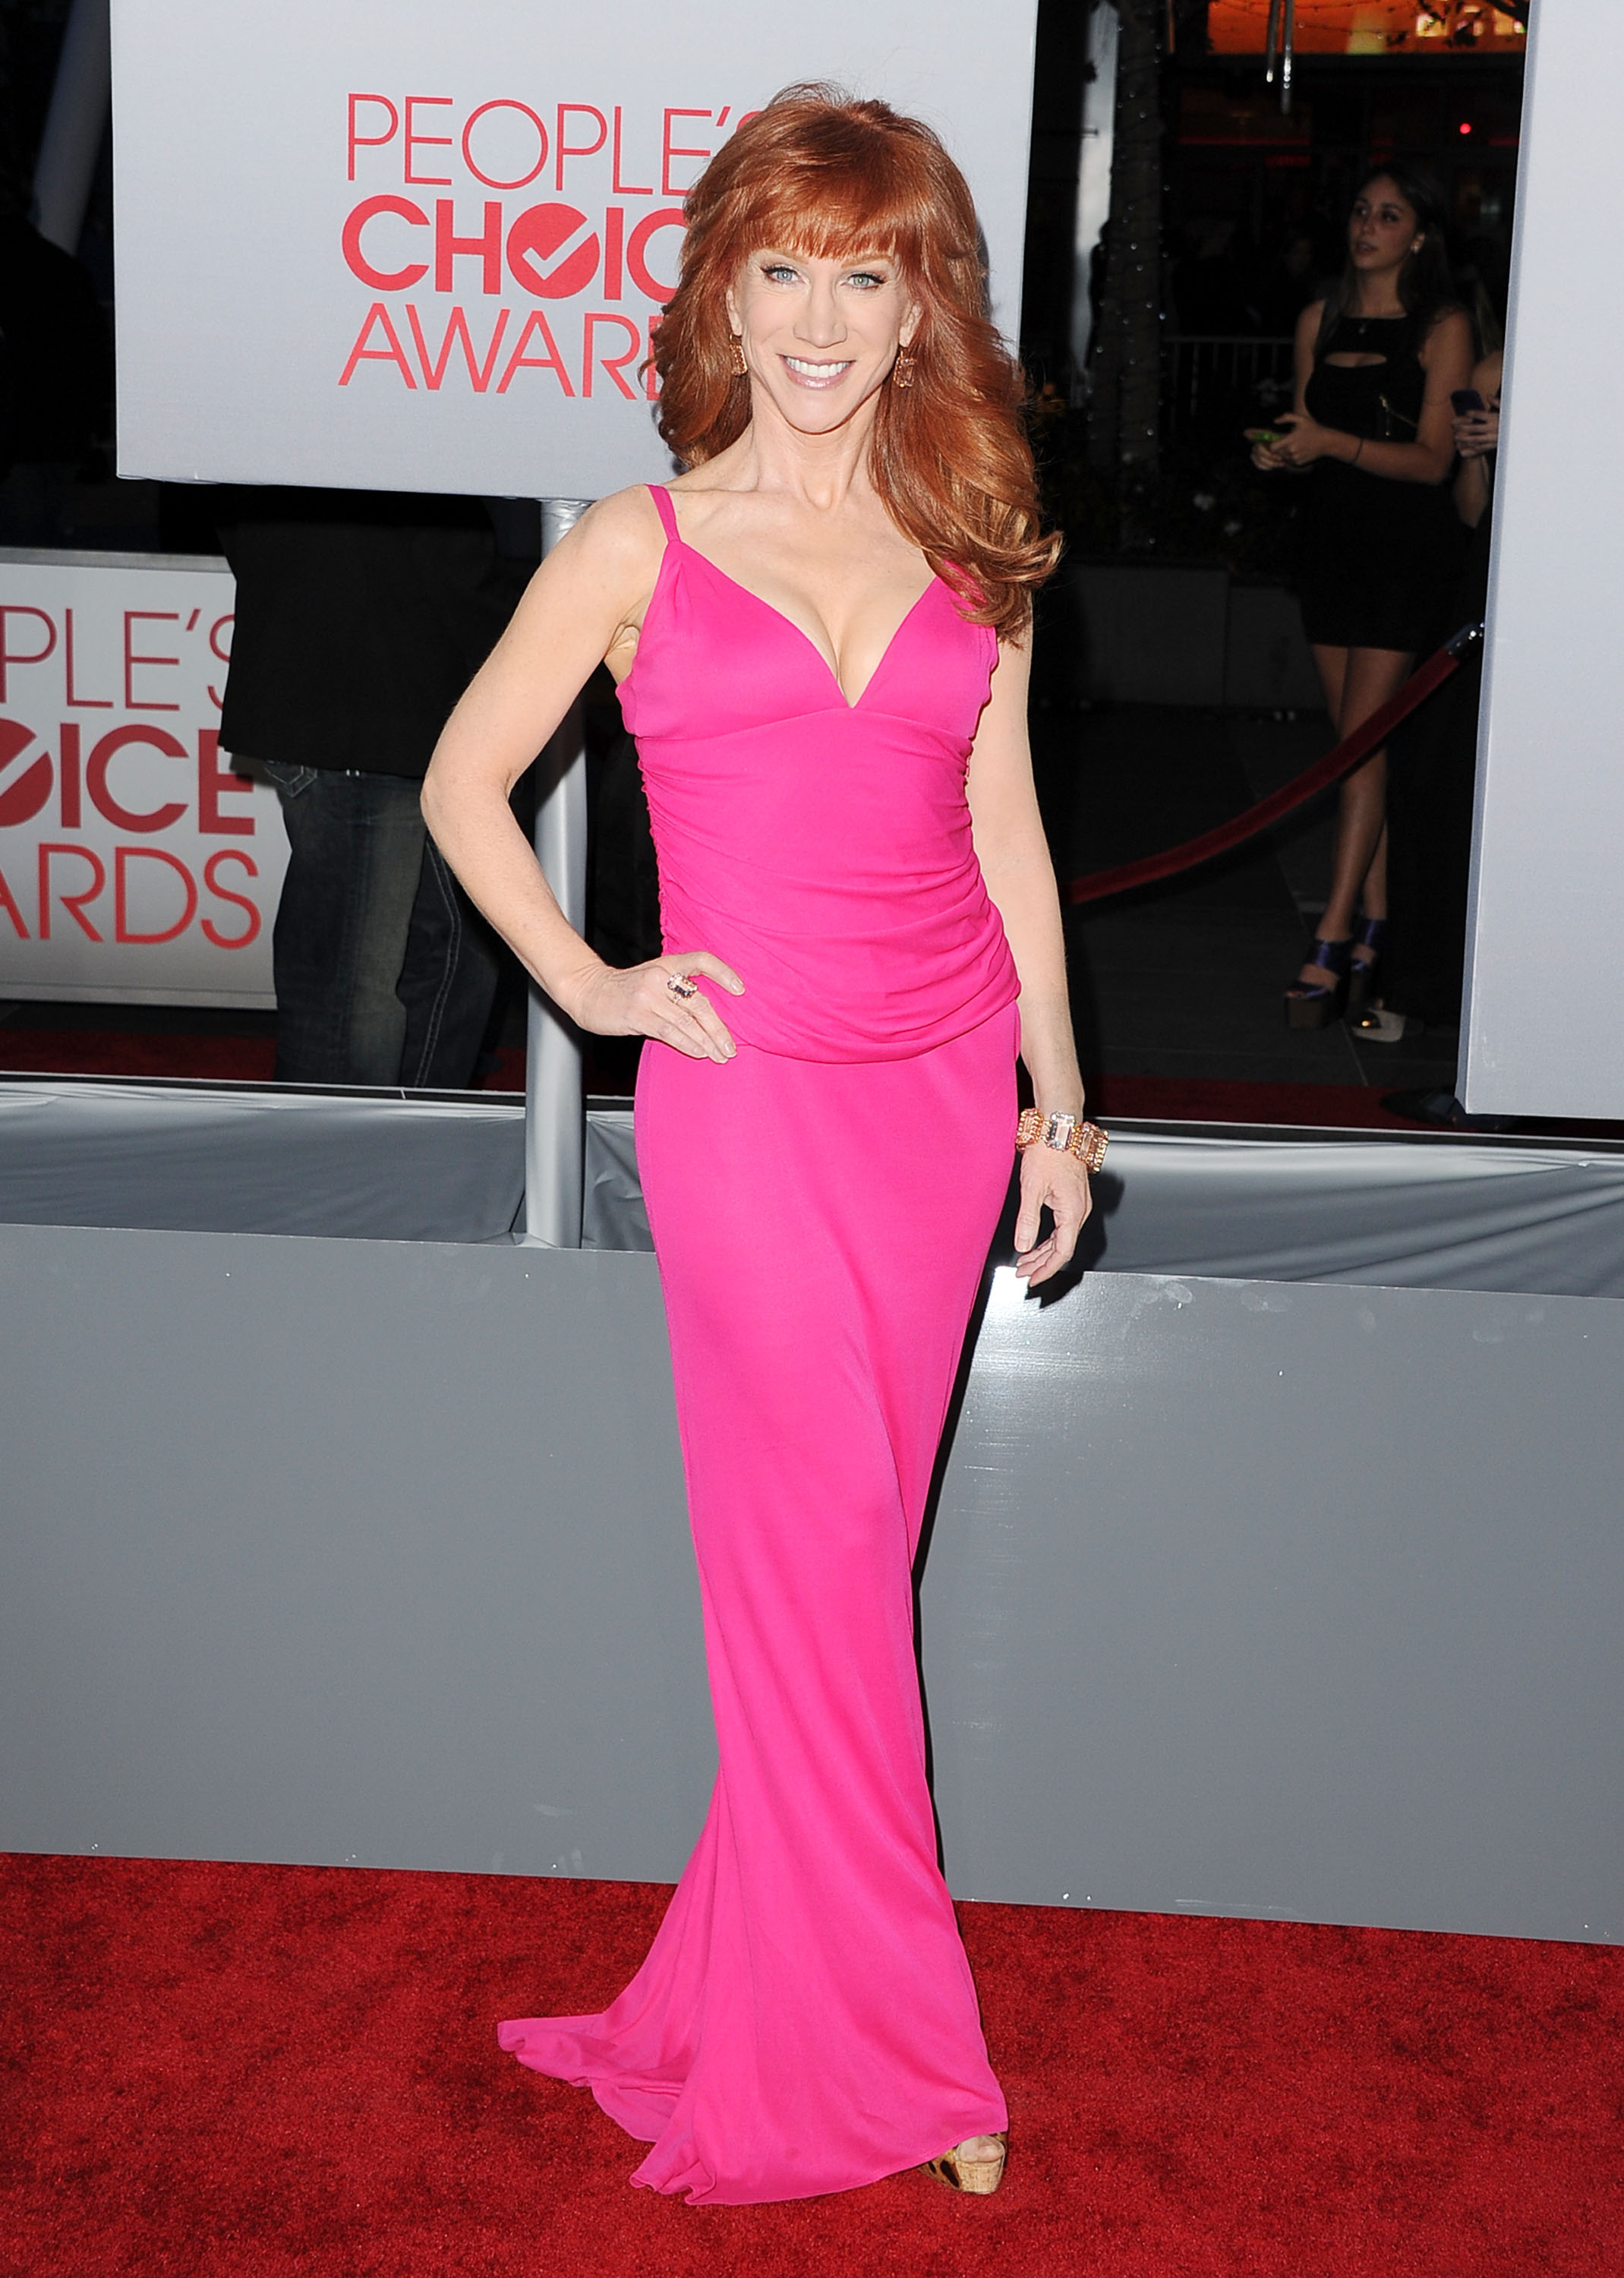 Kathy Griffin wore a deep V-neck dress.